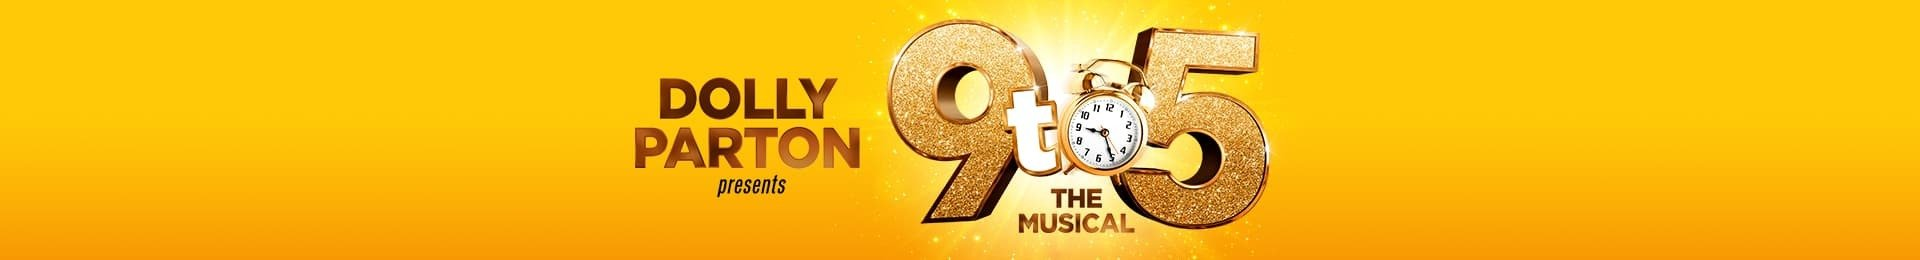 9 to 5: The Musical banner image